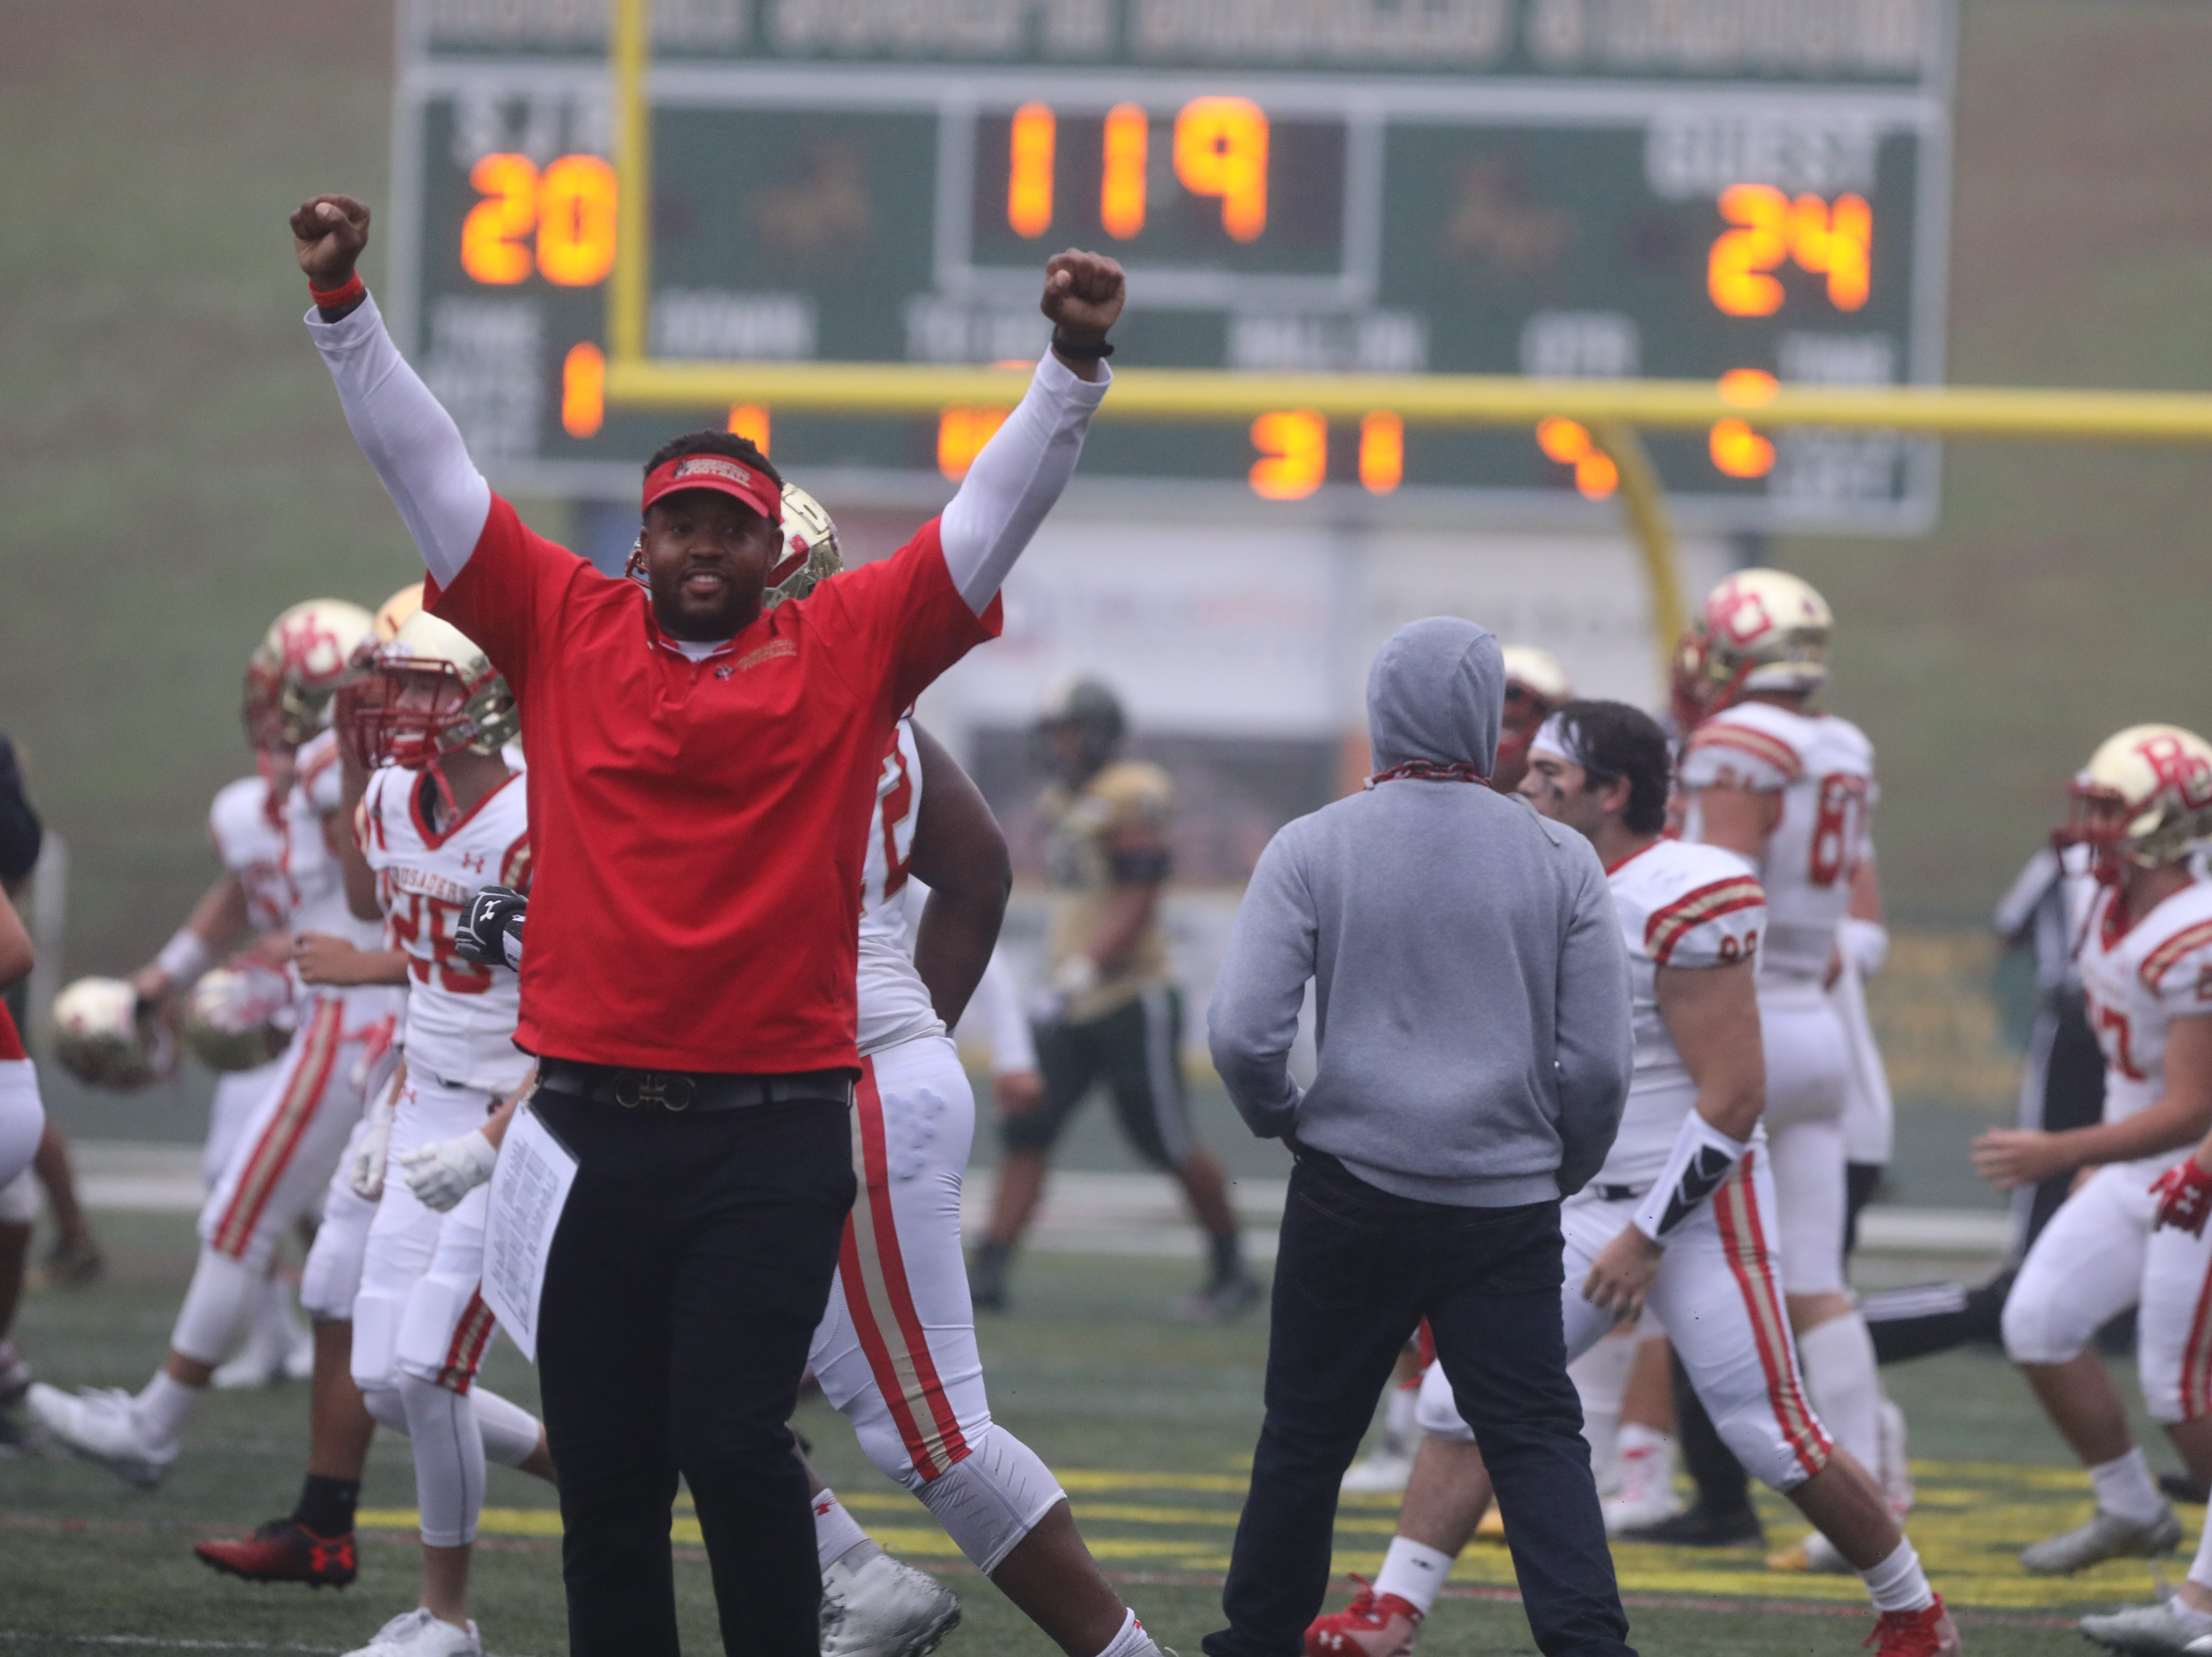 Assistant coach Darnell Carter celebrates his team's win at the end off the game.